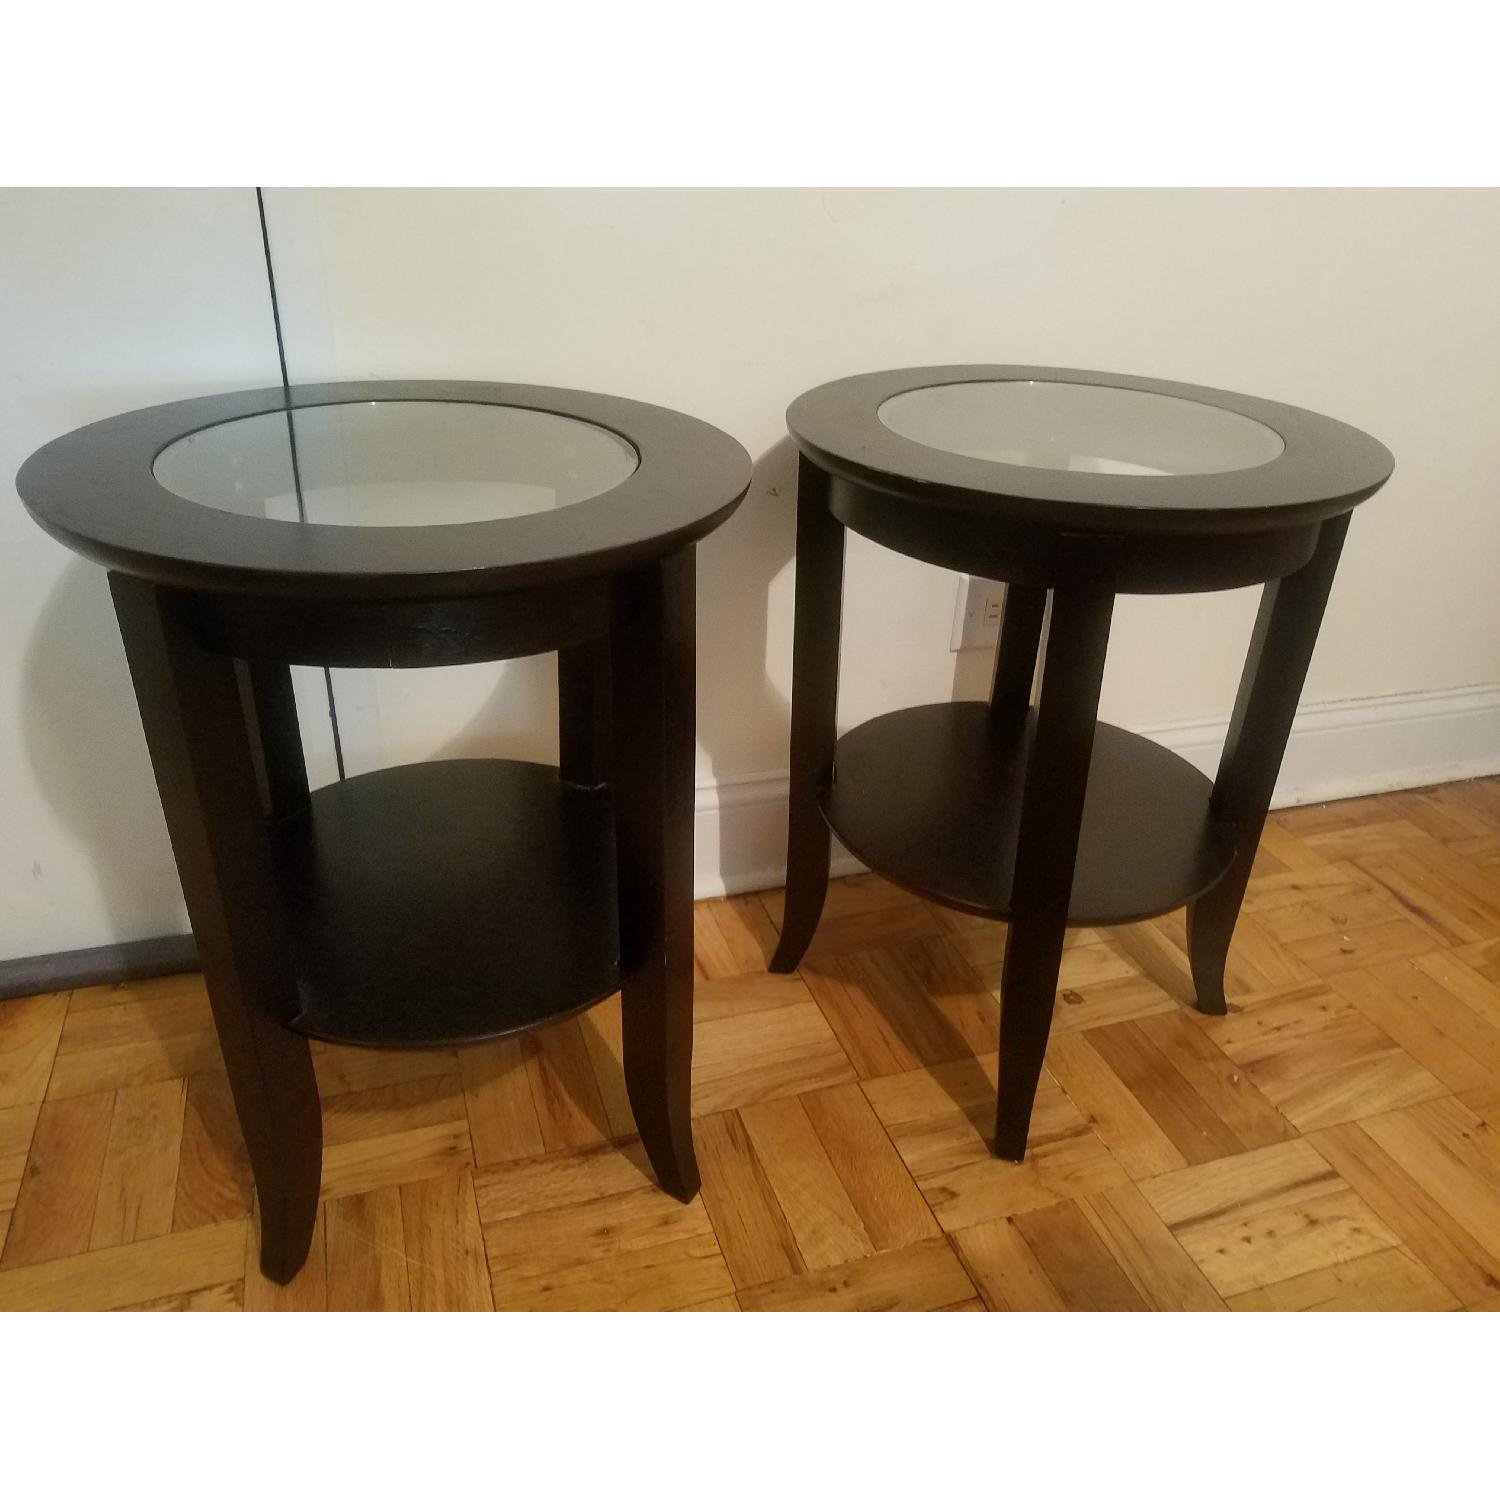 Wood End Table W/ Glass Center ...